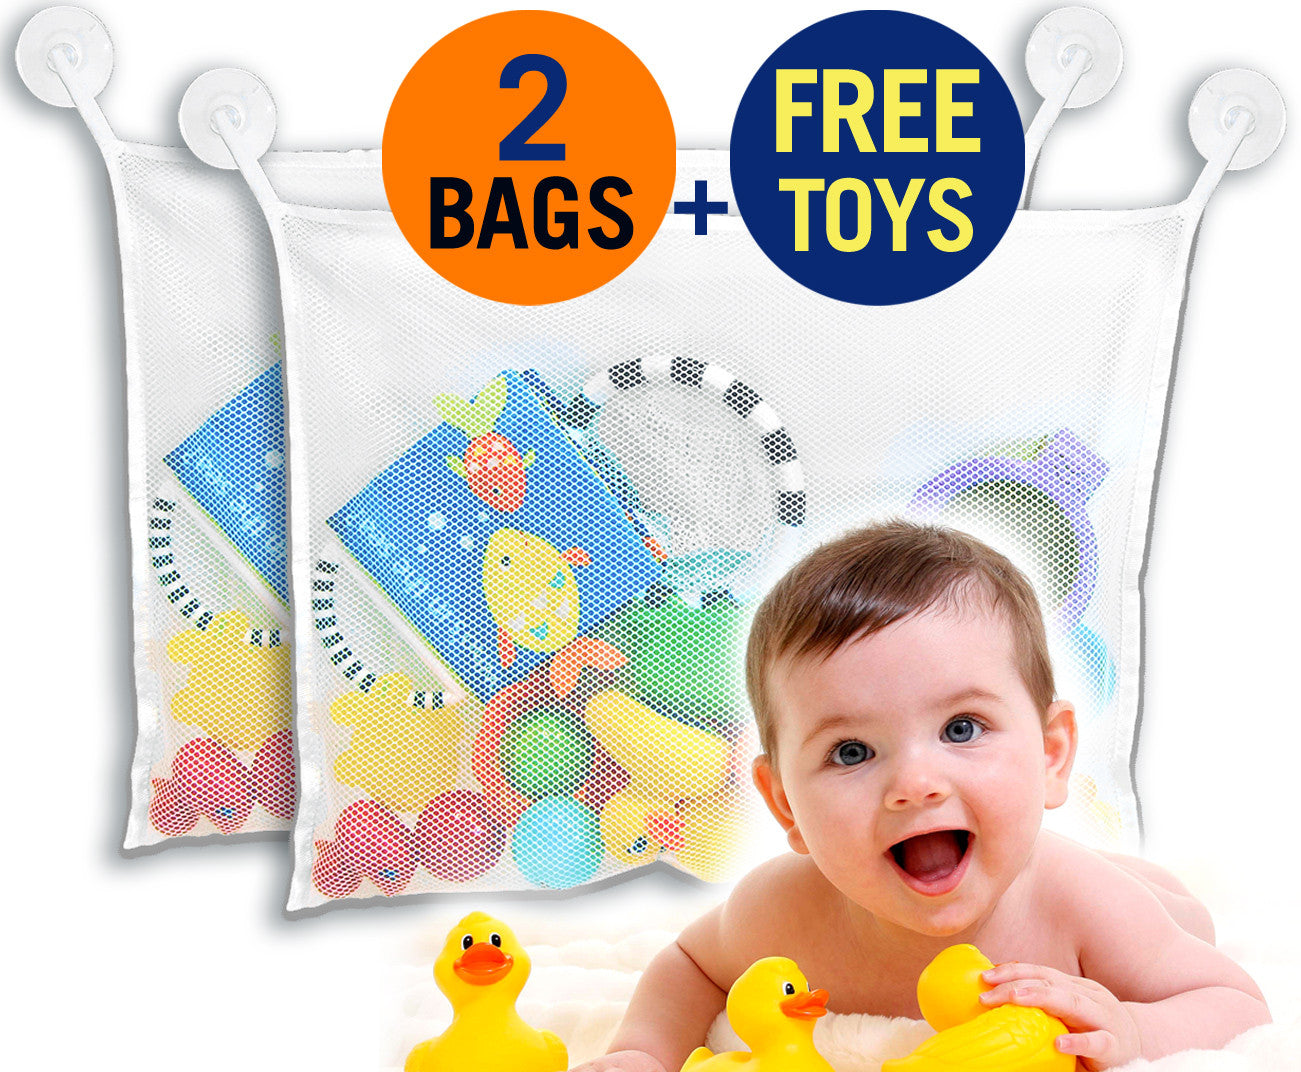 (2 Bags) Best Four Sea Squirts Baby Bath Toys PLUS Bath Toy Organizer from MoriBerry Offer Large Storage Basket for Baby Boys and Girls - Strongly Suctions to Tile and Glass - Washable Mold Resistant. Get Your Bathroom Organized Now!